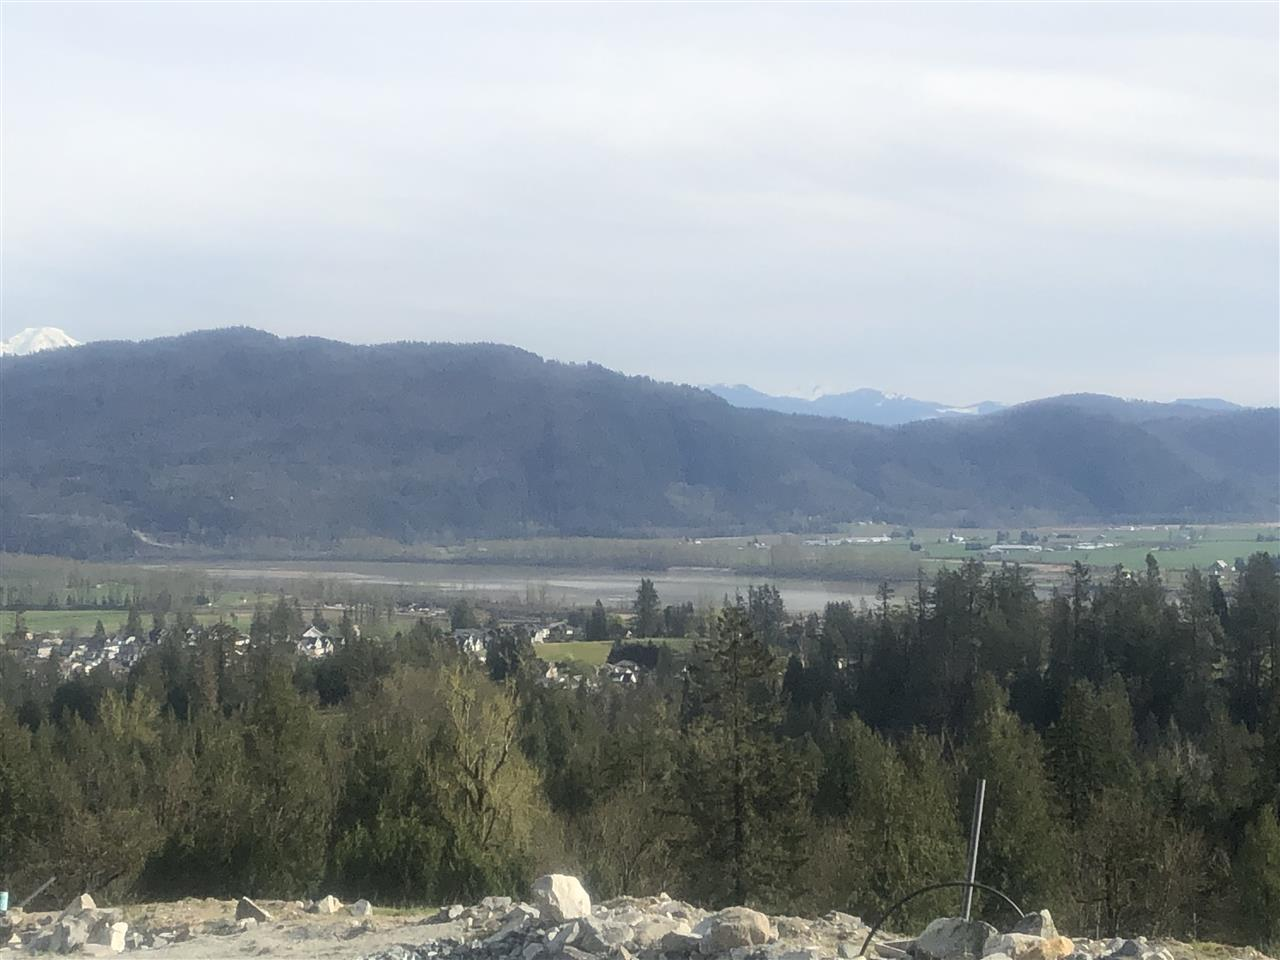 """""""Hatzic Ridge""""! Spectacular river & Mt Baker views! Build your dream home here! This will be one of the finest high end developments in the Fraser Valley!"""